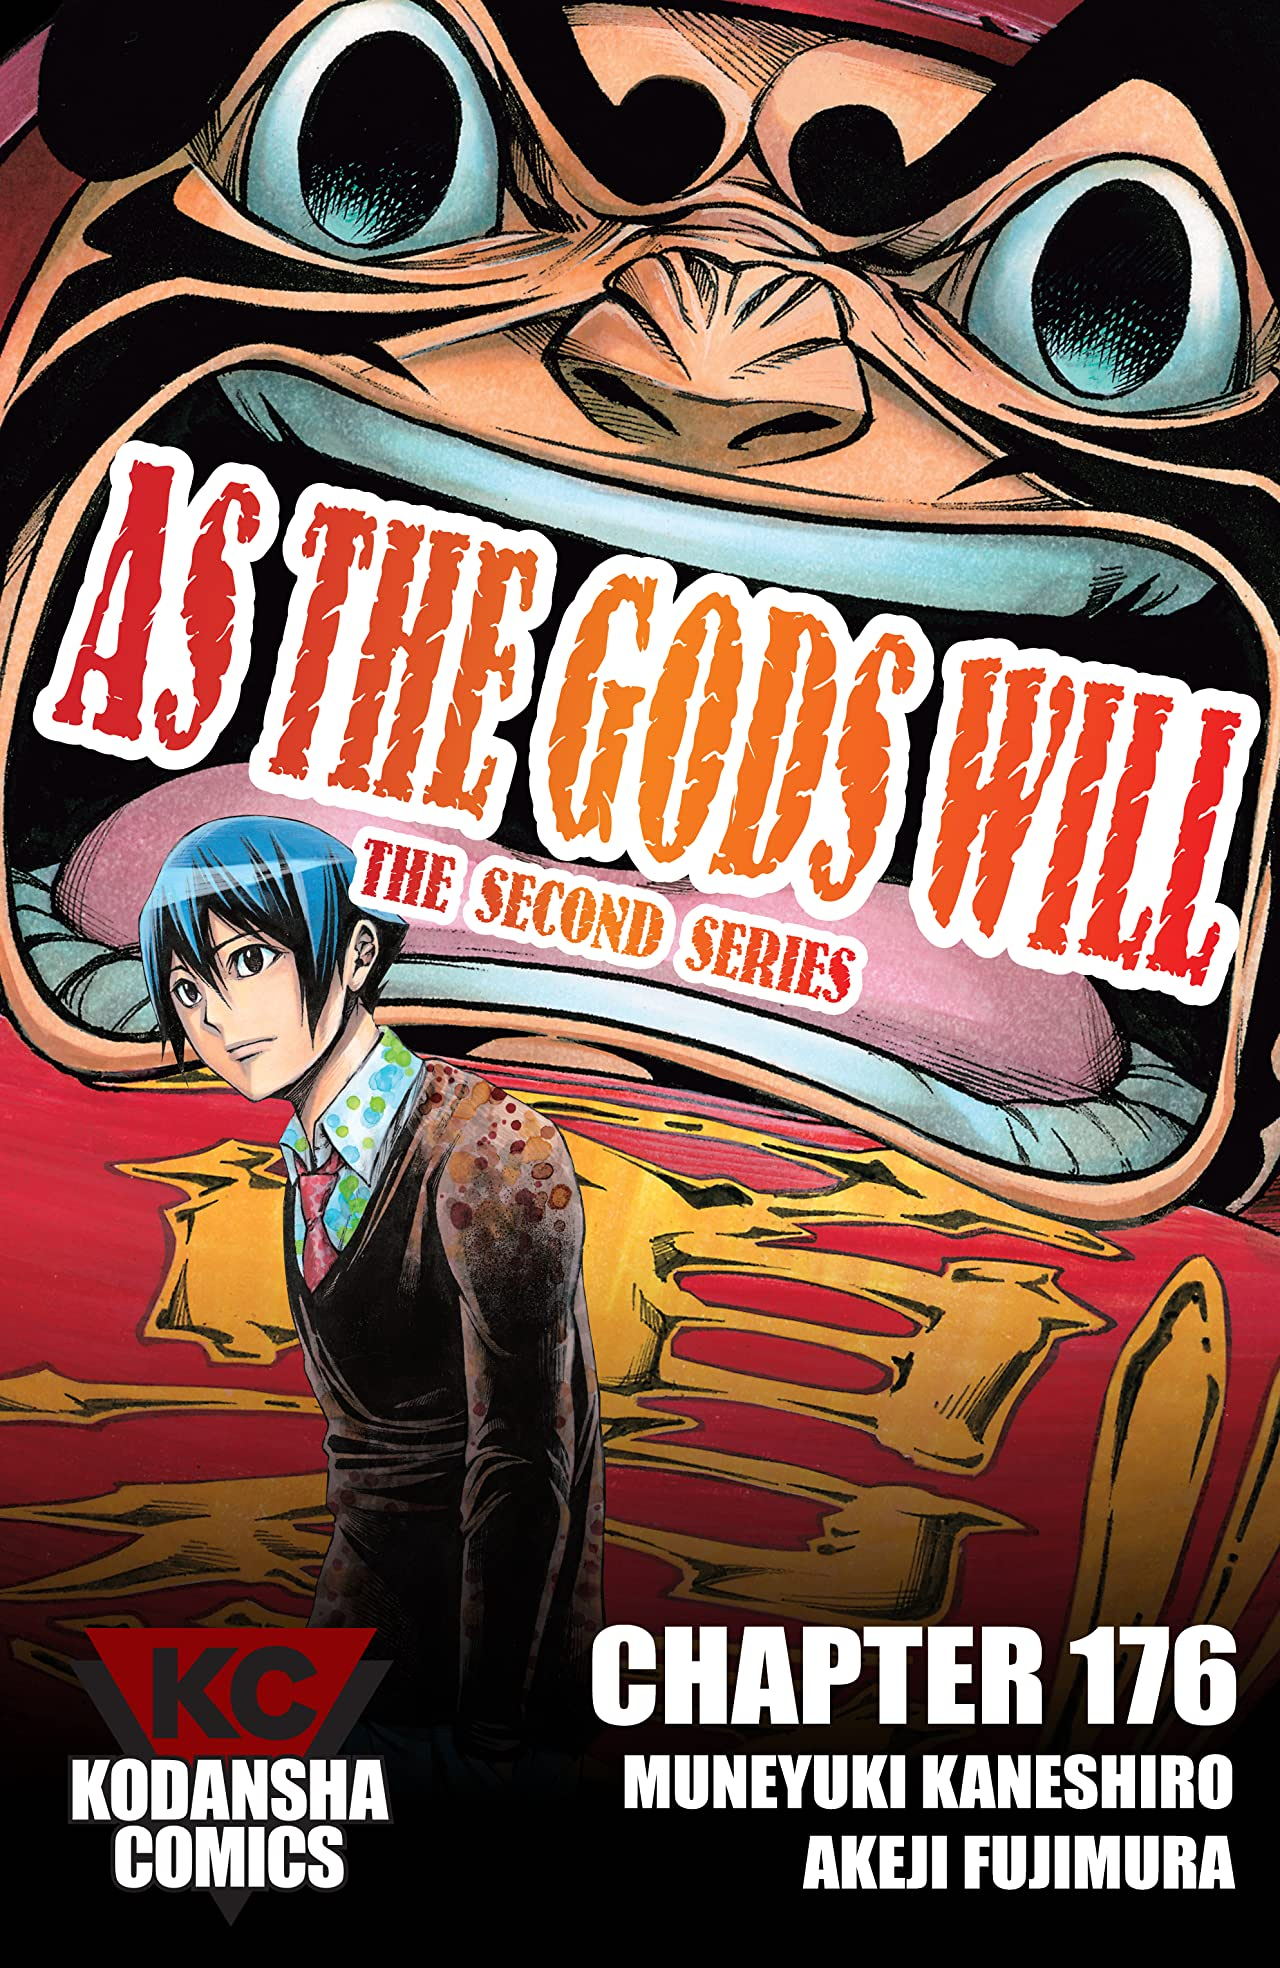 As The Gods Will: The Second Series #176